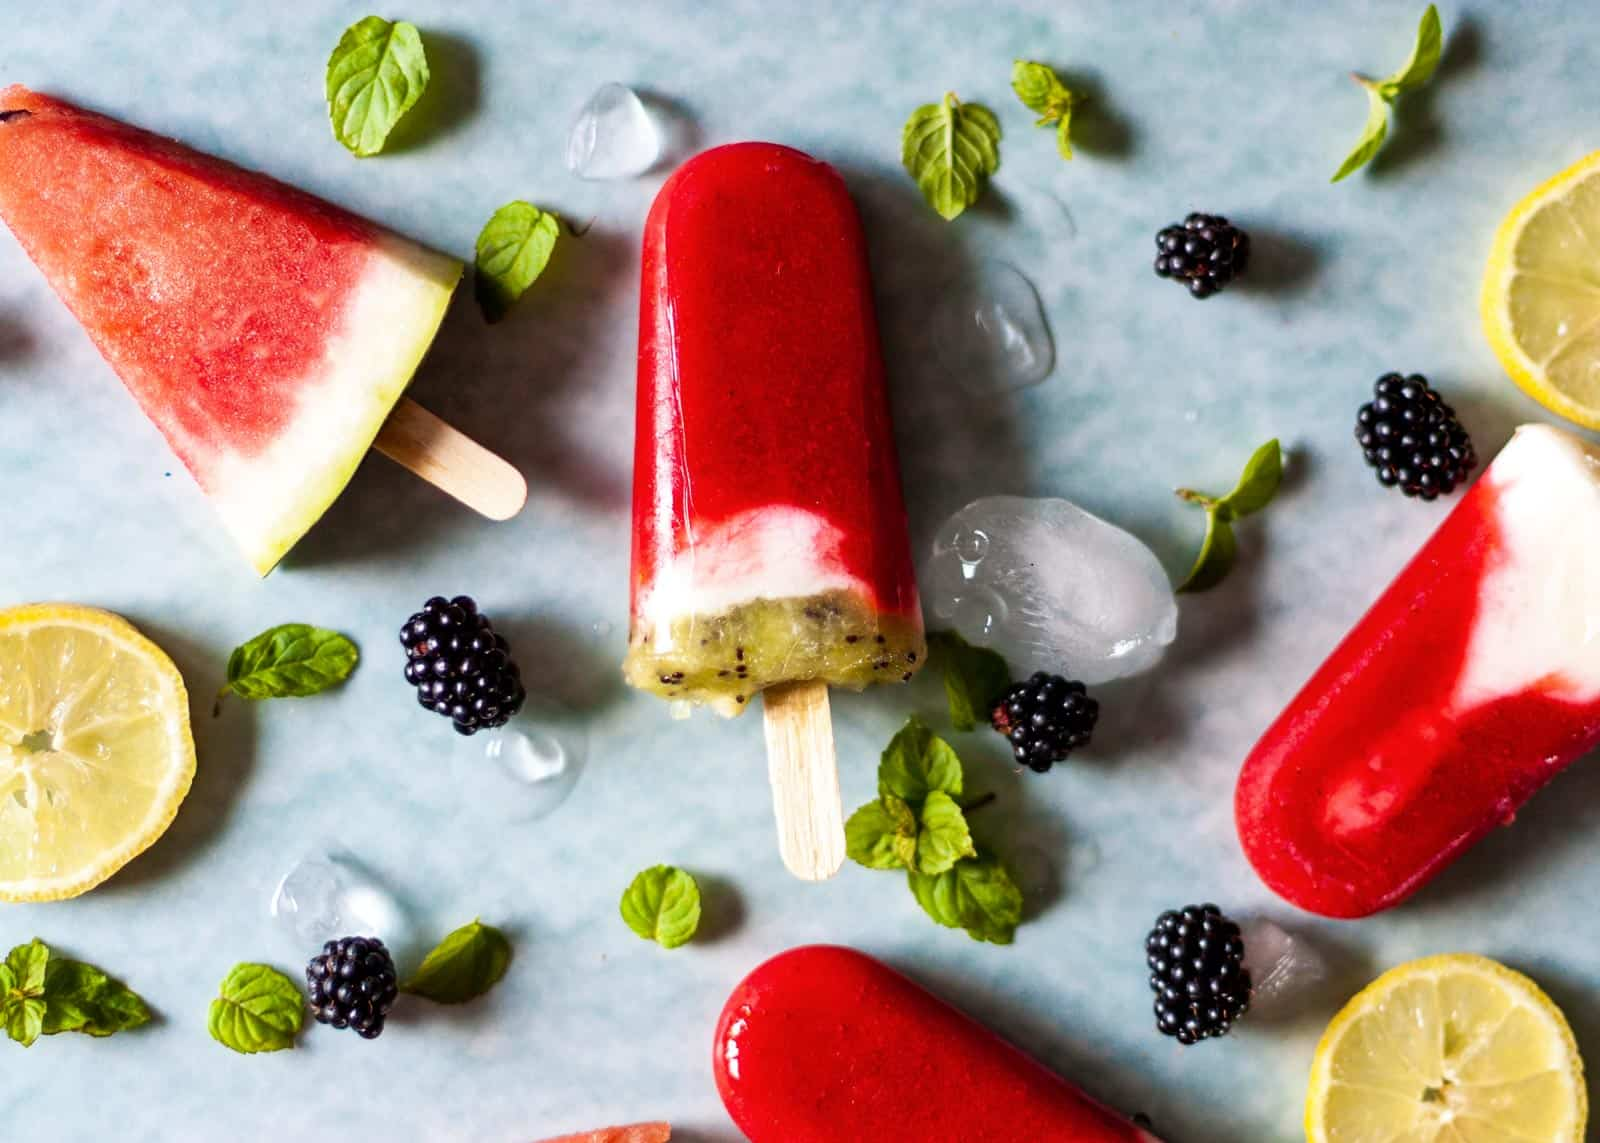 Ice lolly - recipe